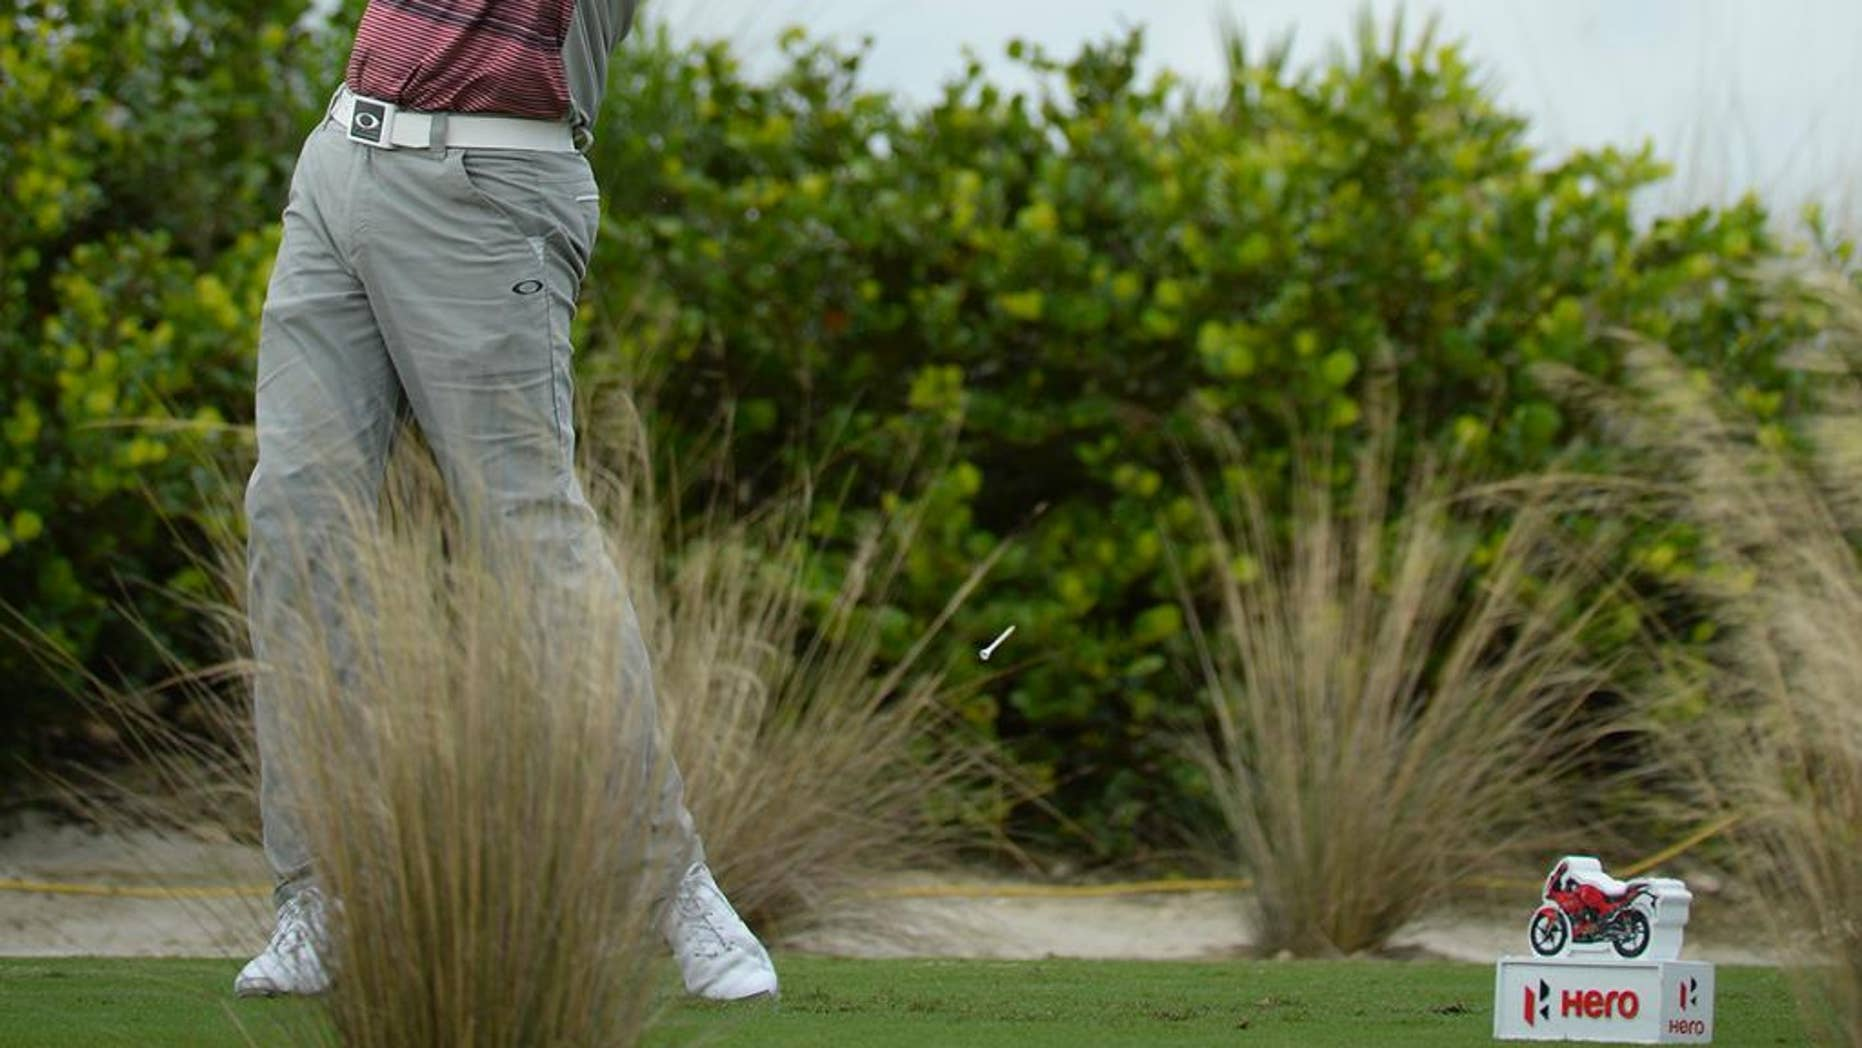 In this photo provided by the Tiger Woods Foundation, Bubba Watson tees off on the 11th hole at Albany Golf Club during the Hero World Challenge in Nassau, Bahamas on Sunday, Dec. 6, 2015. Watson won the tournament by three shots. (J.D. Cuban/Tiger Woods Foundation via AP)